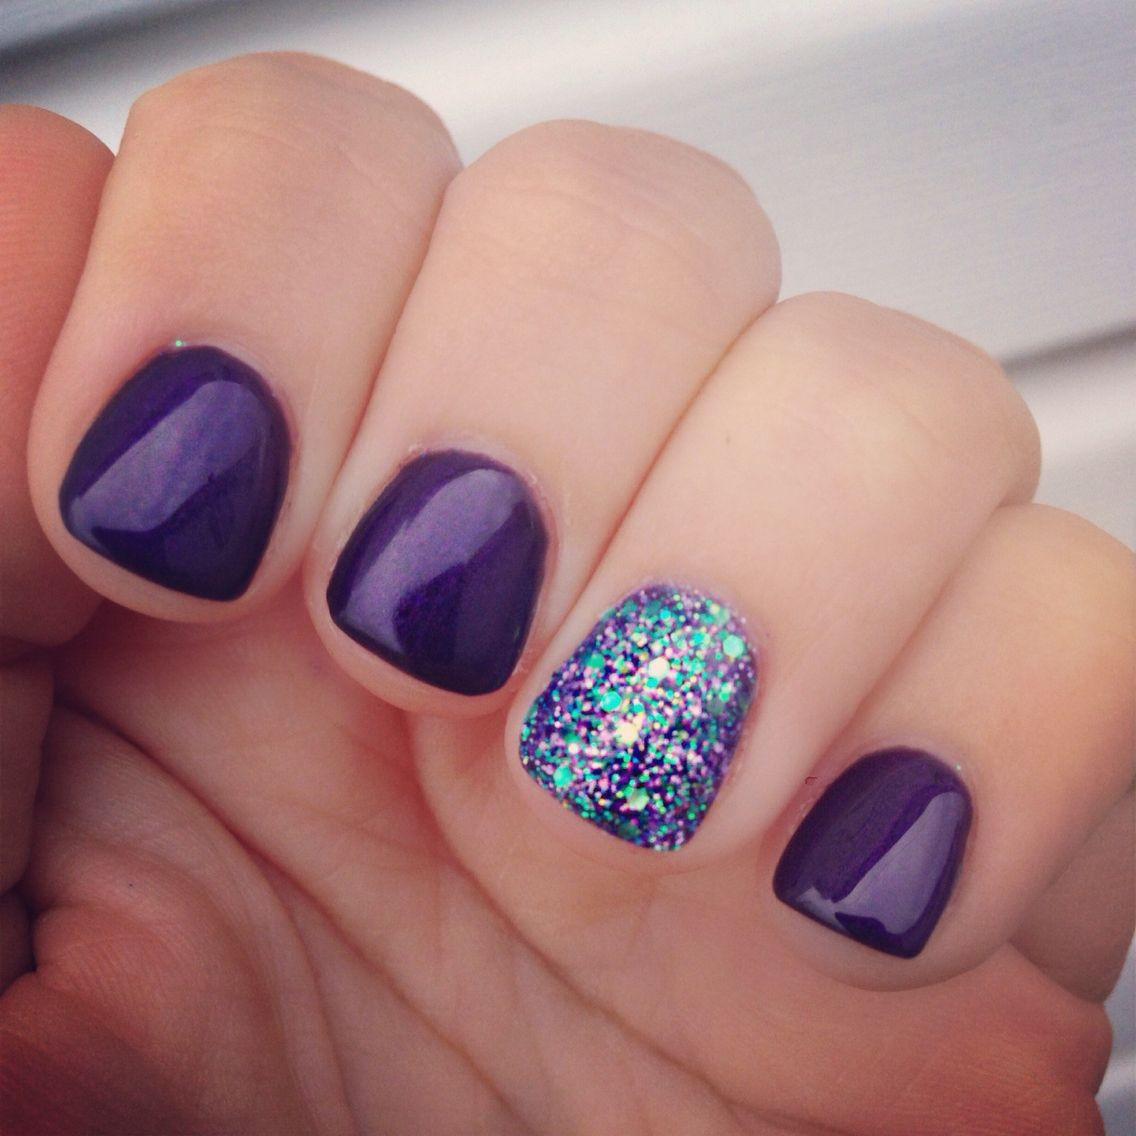 Peacock inspired nails #nailart #purple #glitter #peacock · Gel Manicure  DesignsNails ... - Peacock Inspired Nails #nailart #purple #glitter #peacock Nail